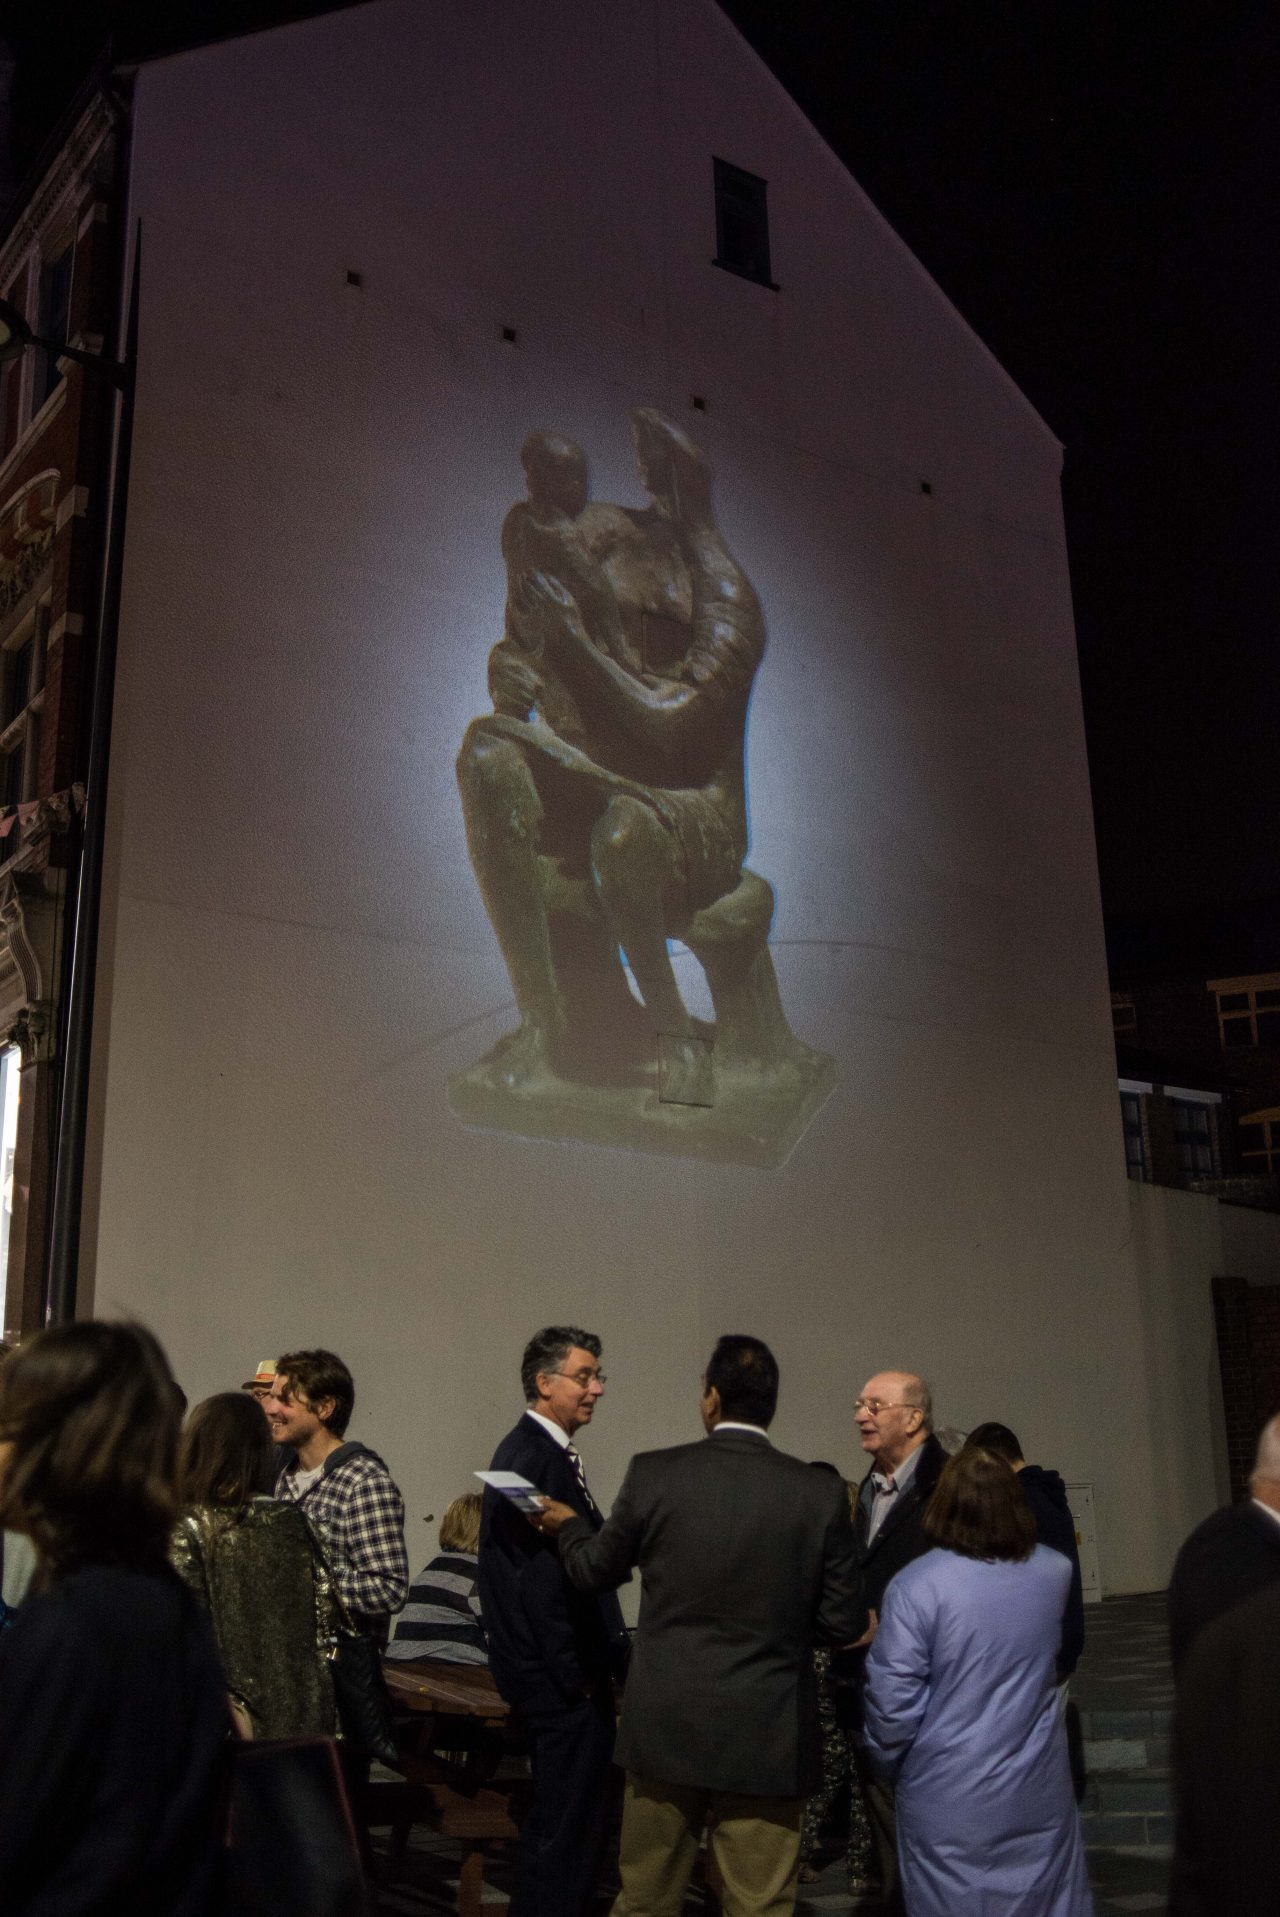 Image of Henry Moore's 'Mother & Child' projected onto the culture wall at the launch of the public realm arts project.